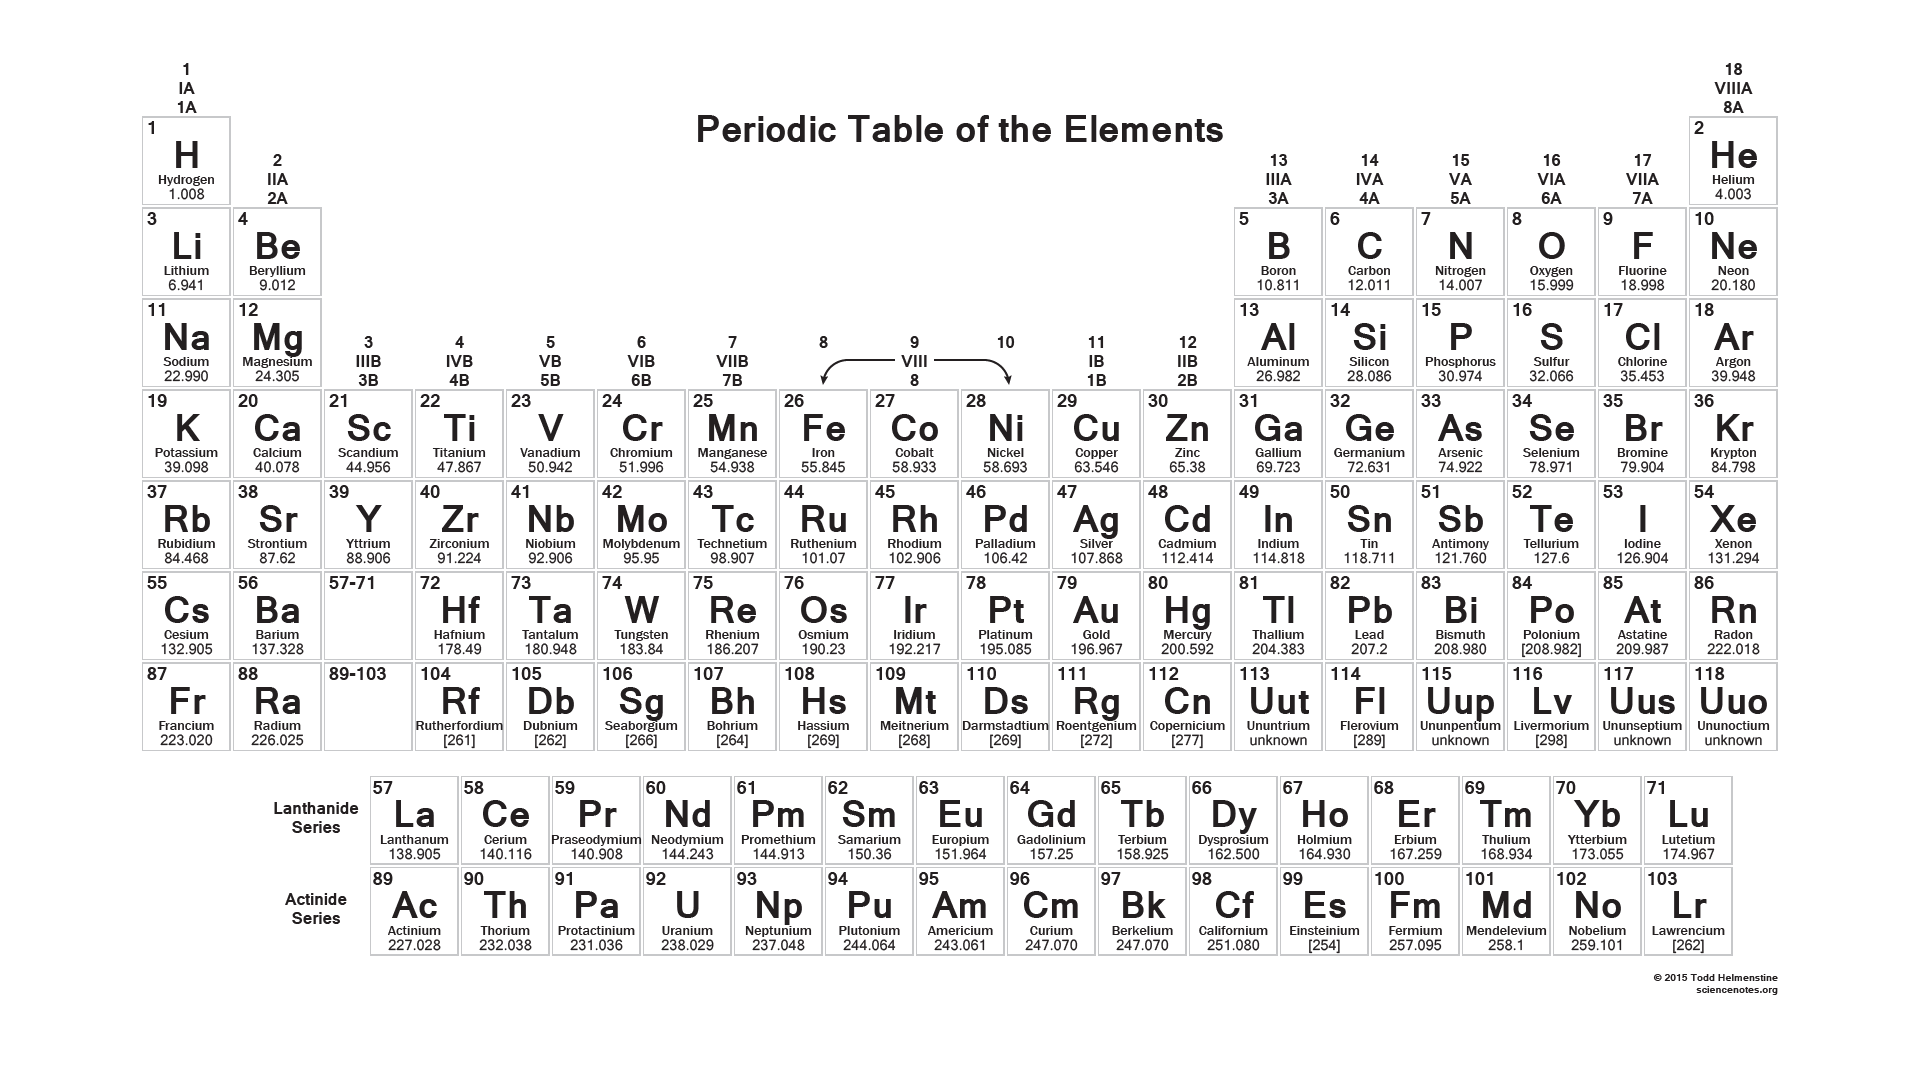 atomic number and mass 2015 black and white periodic table